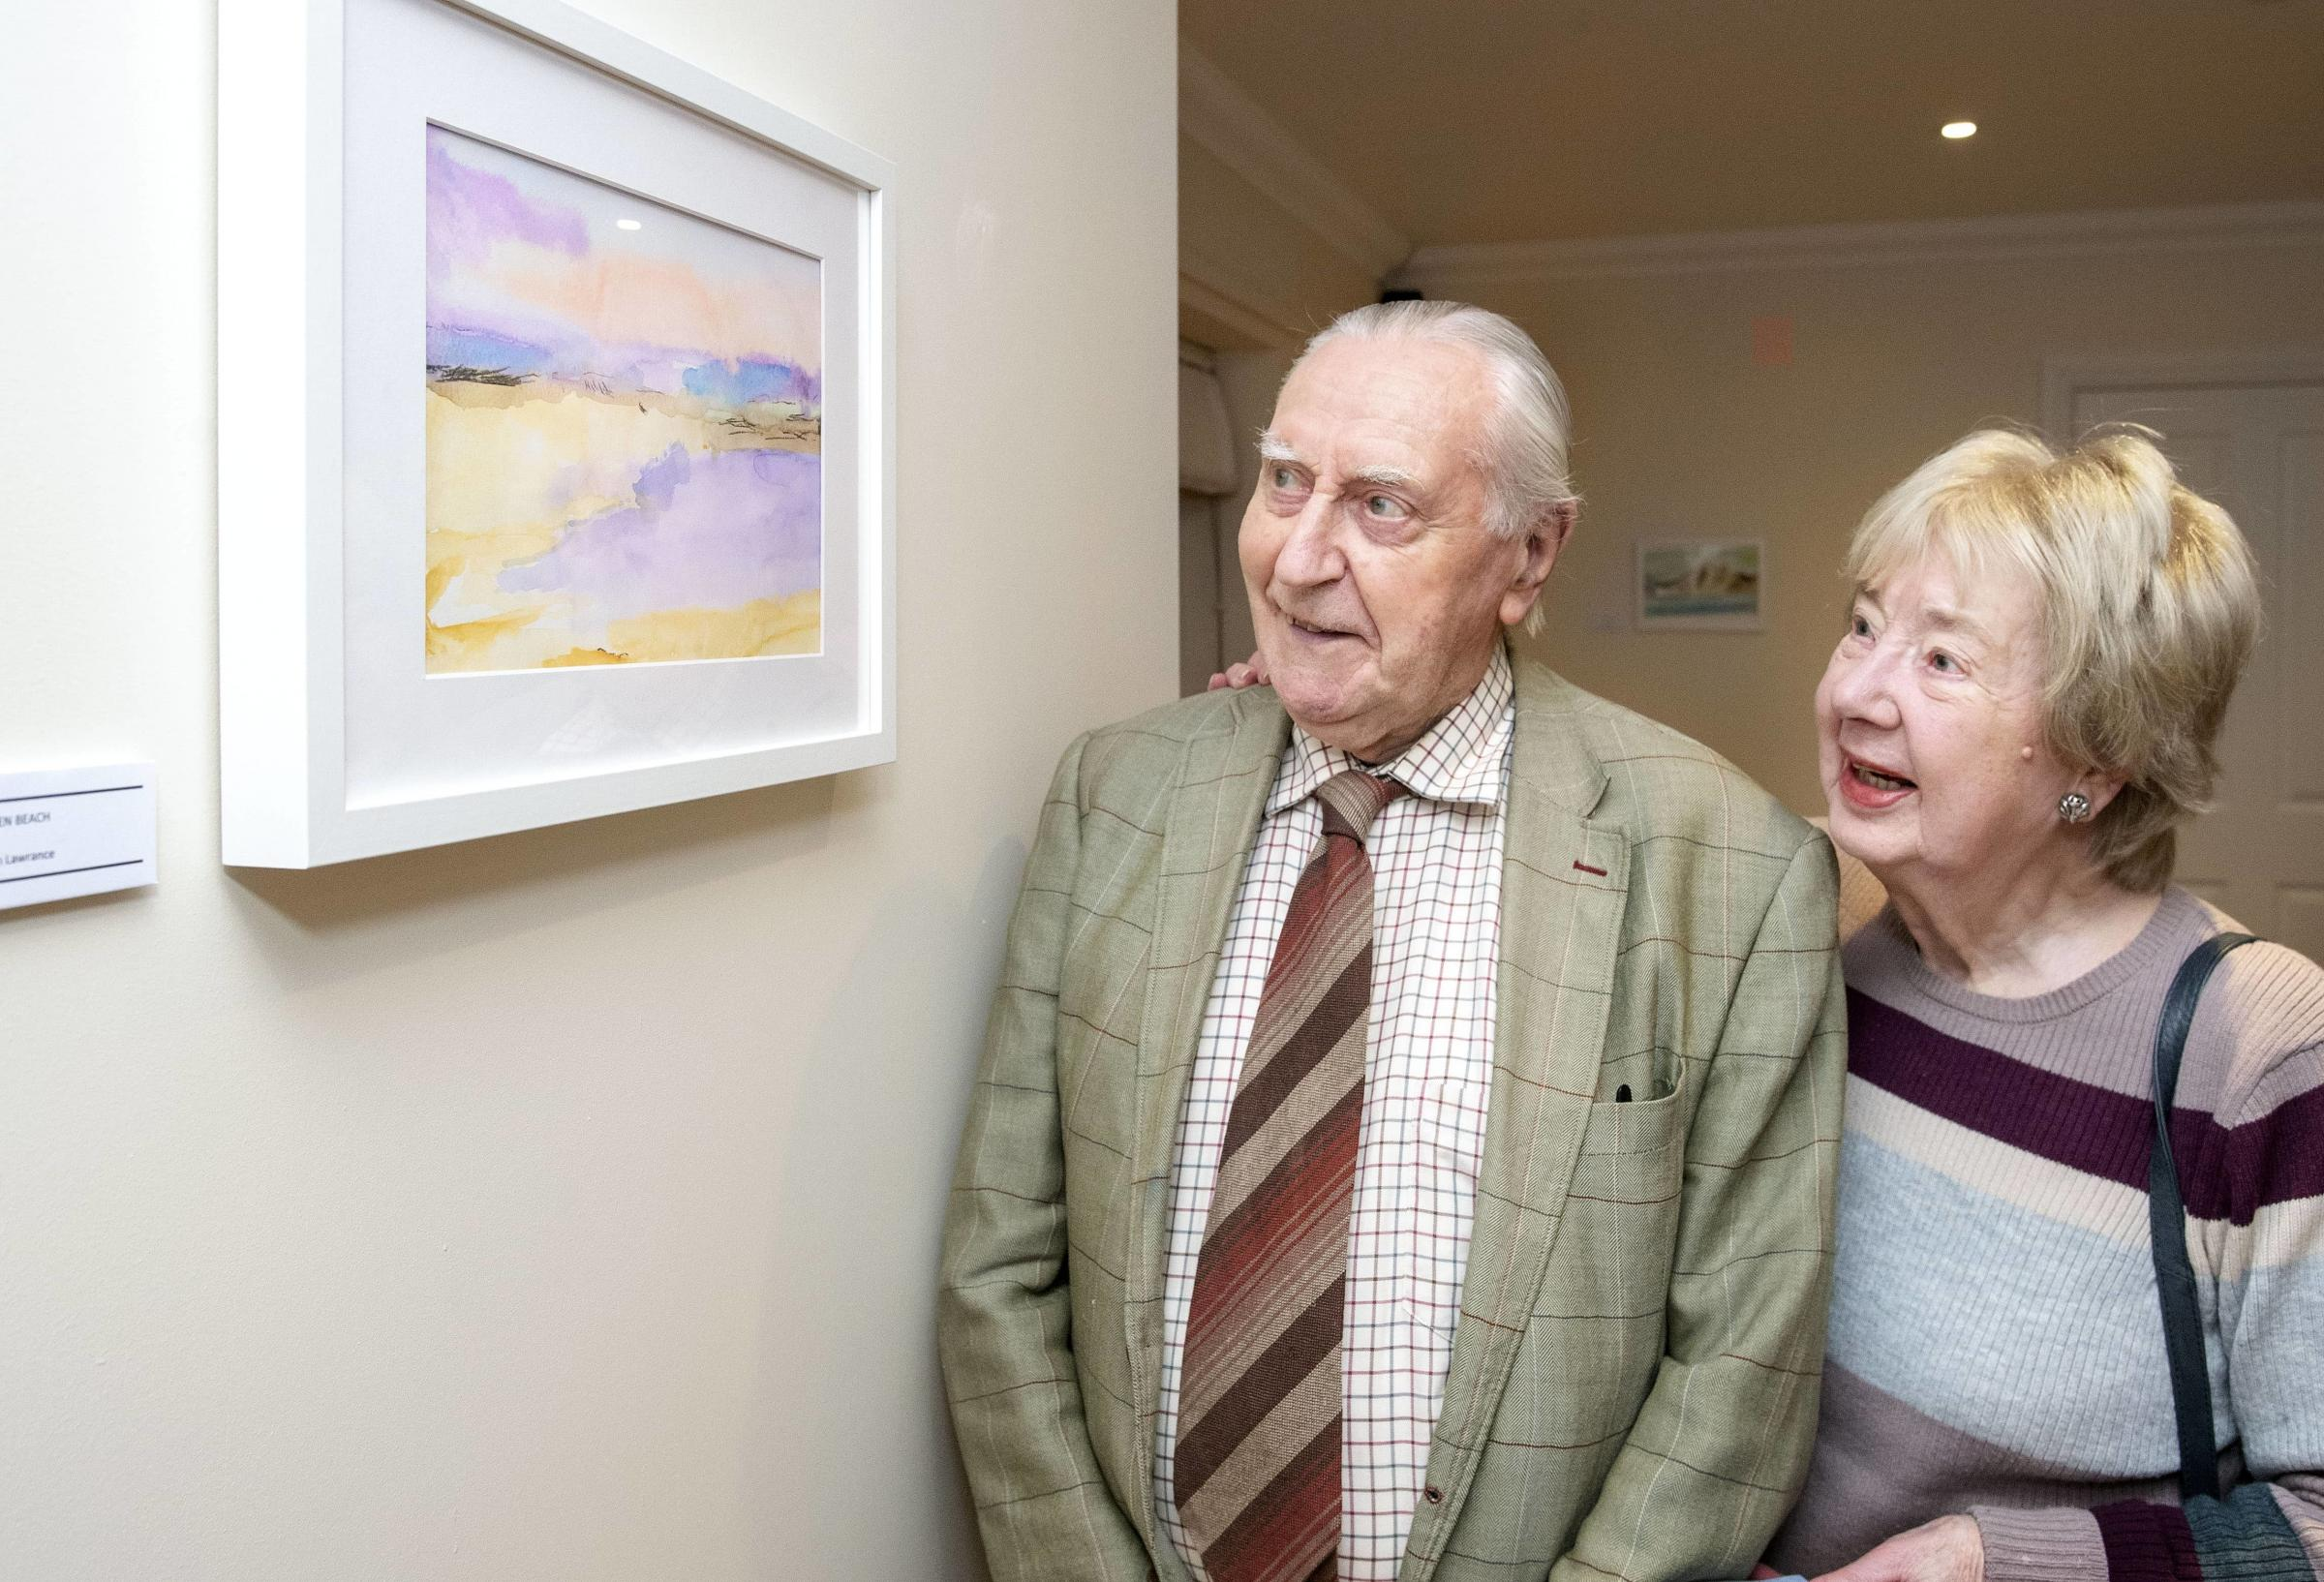 John Lawrance & Margaret Lawrance with his piece 'Open Beach'